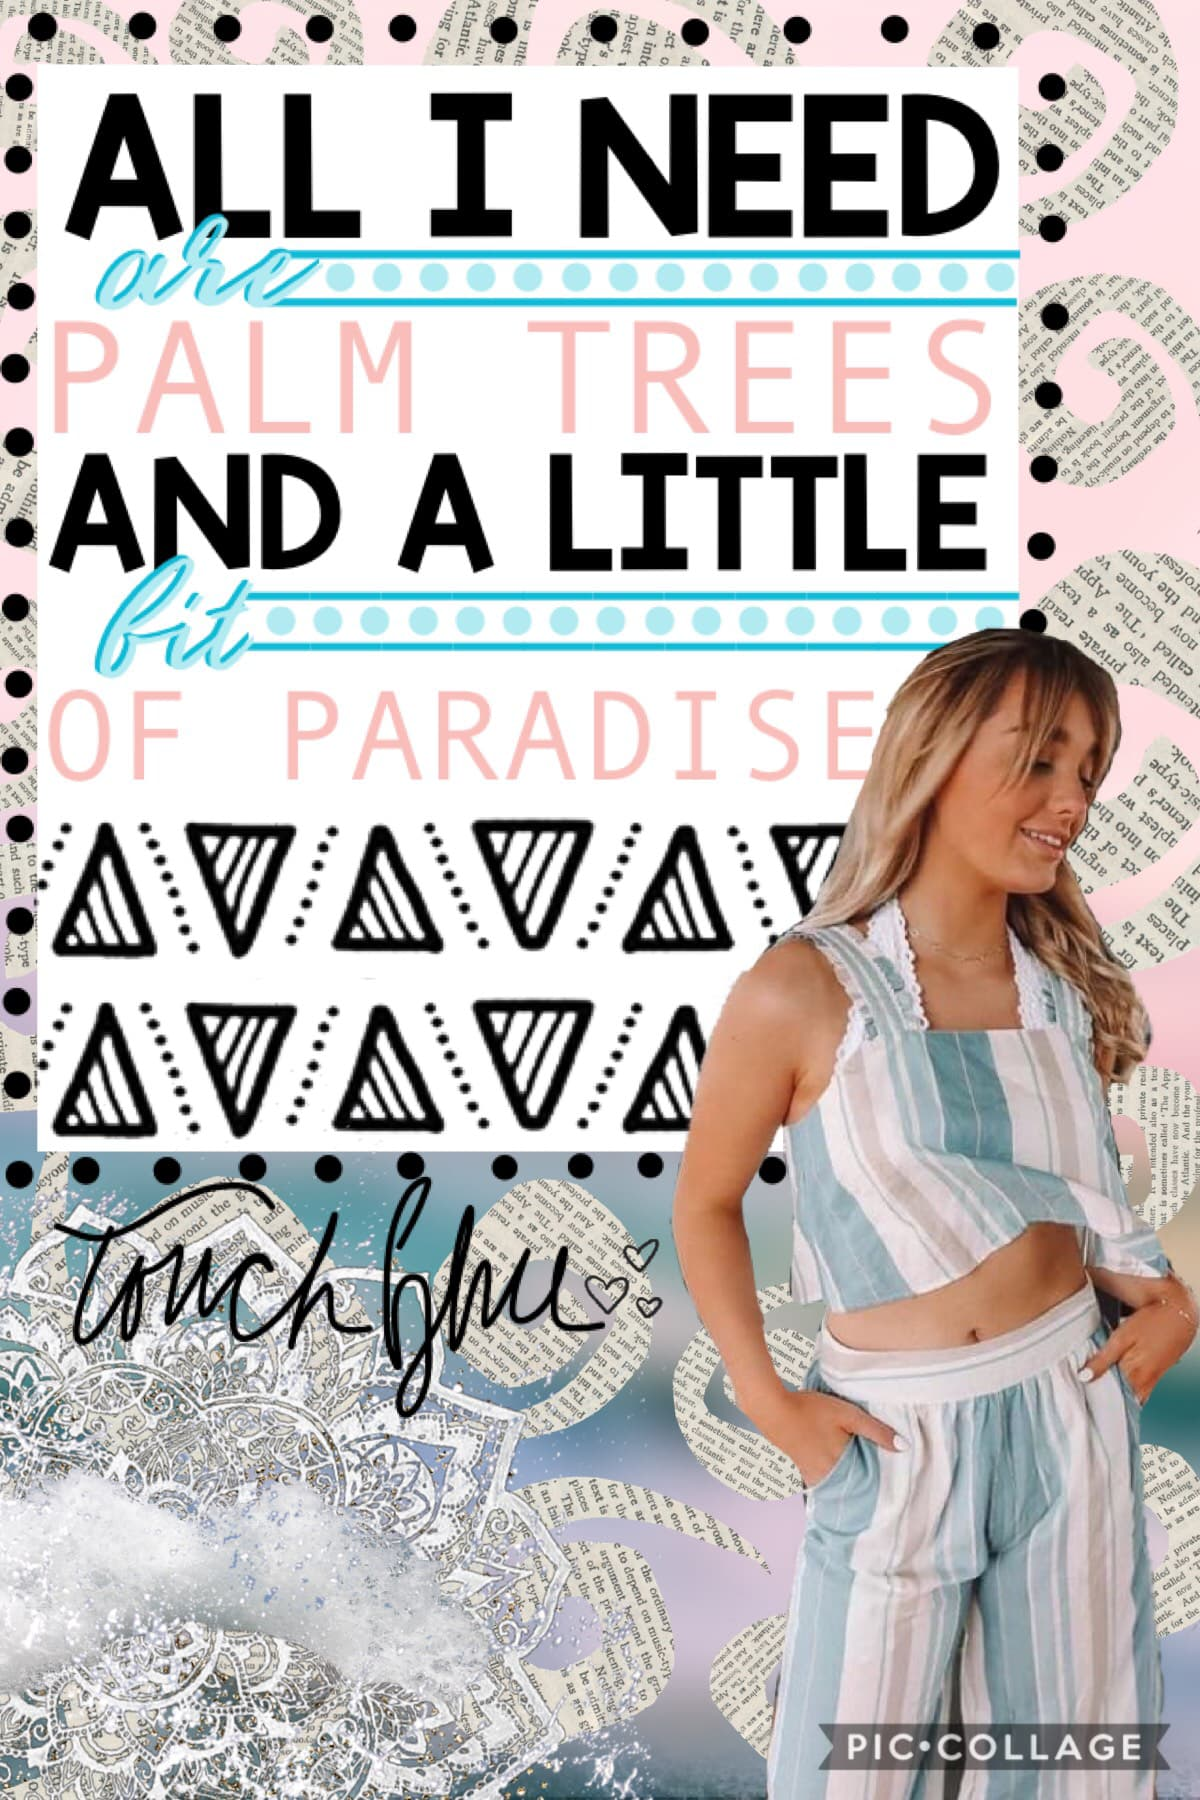 🌴 tap 🌴 I'm back with an old theme!!! Do you guys like it? Rate 1-10.   Qotd- what do you think of the new layout pc did? Aotd- I'm not a big fan 😂 I'm just so used to the other way that this is hard for me hahahha